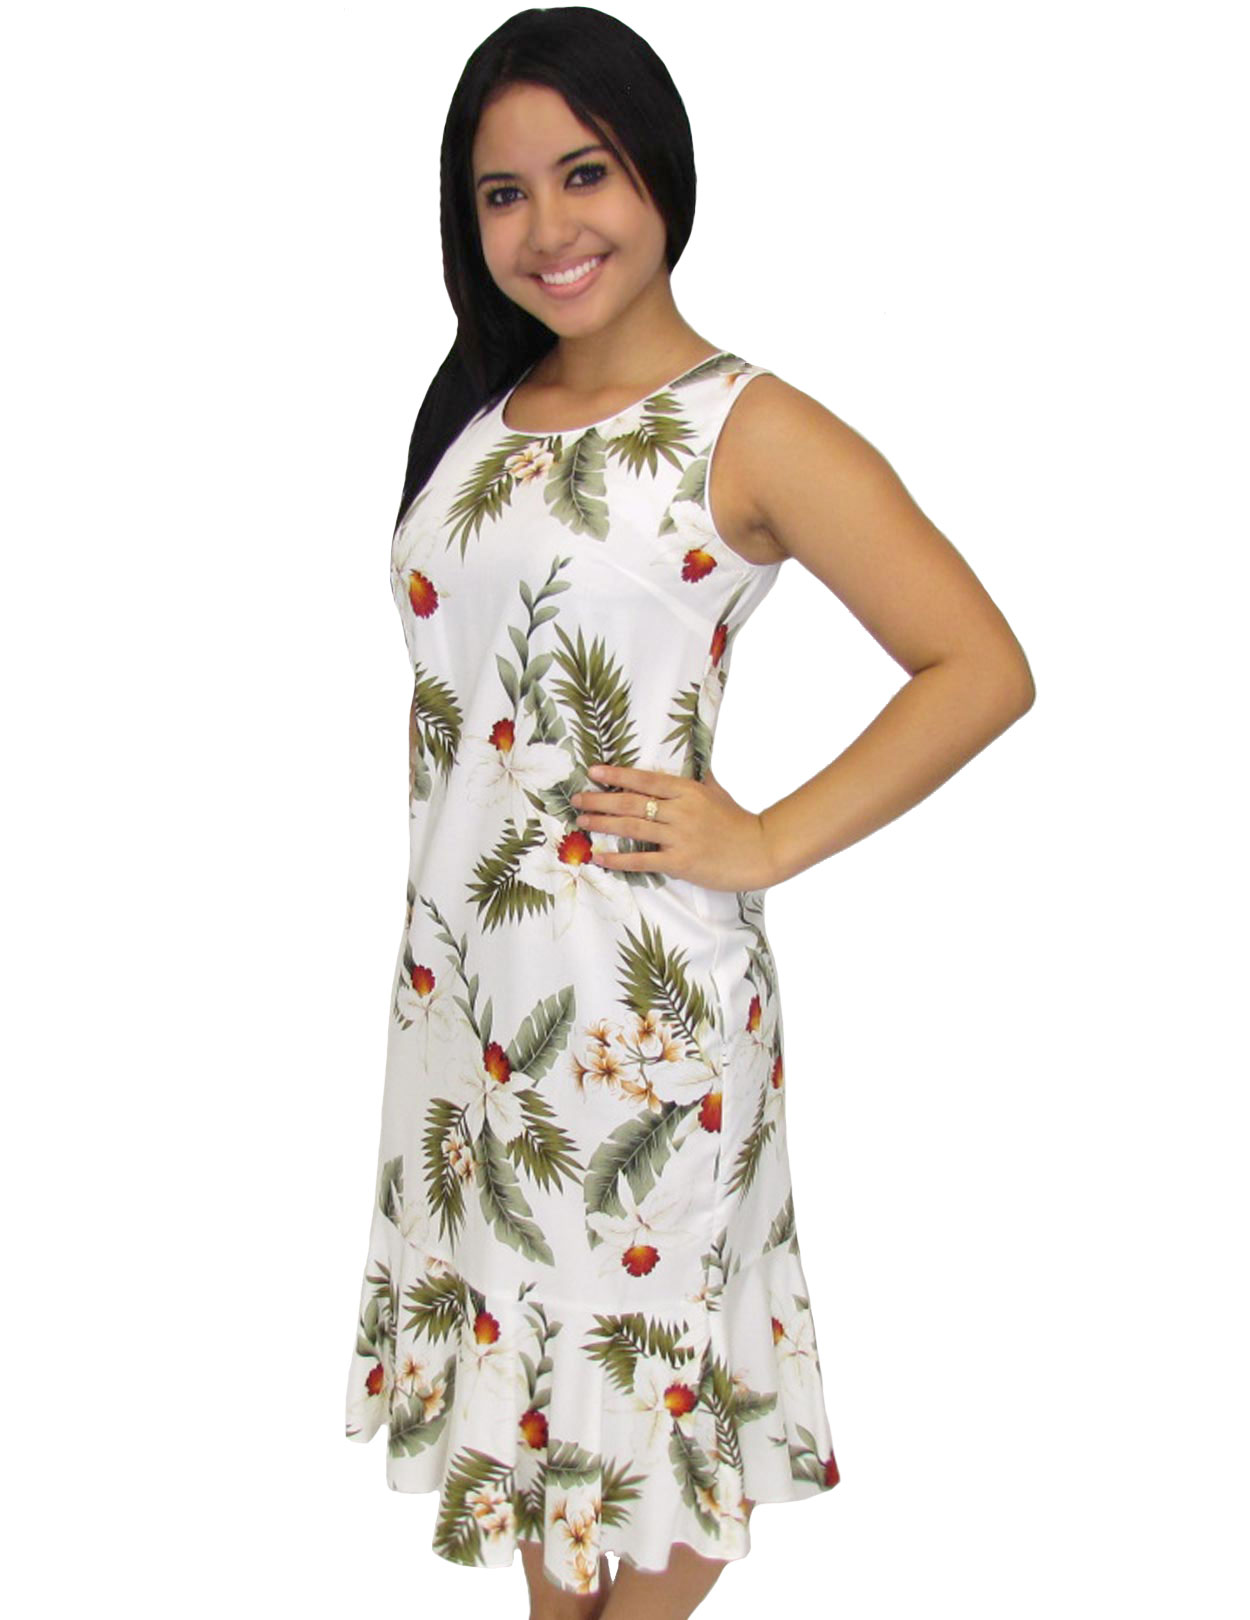 White midi dress hanapepe tank sleeveless shaka time